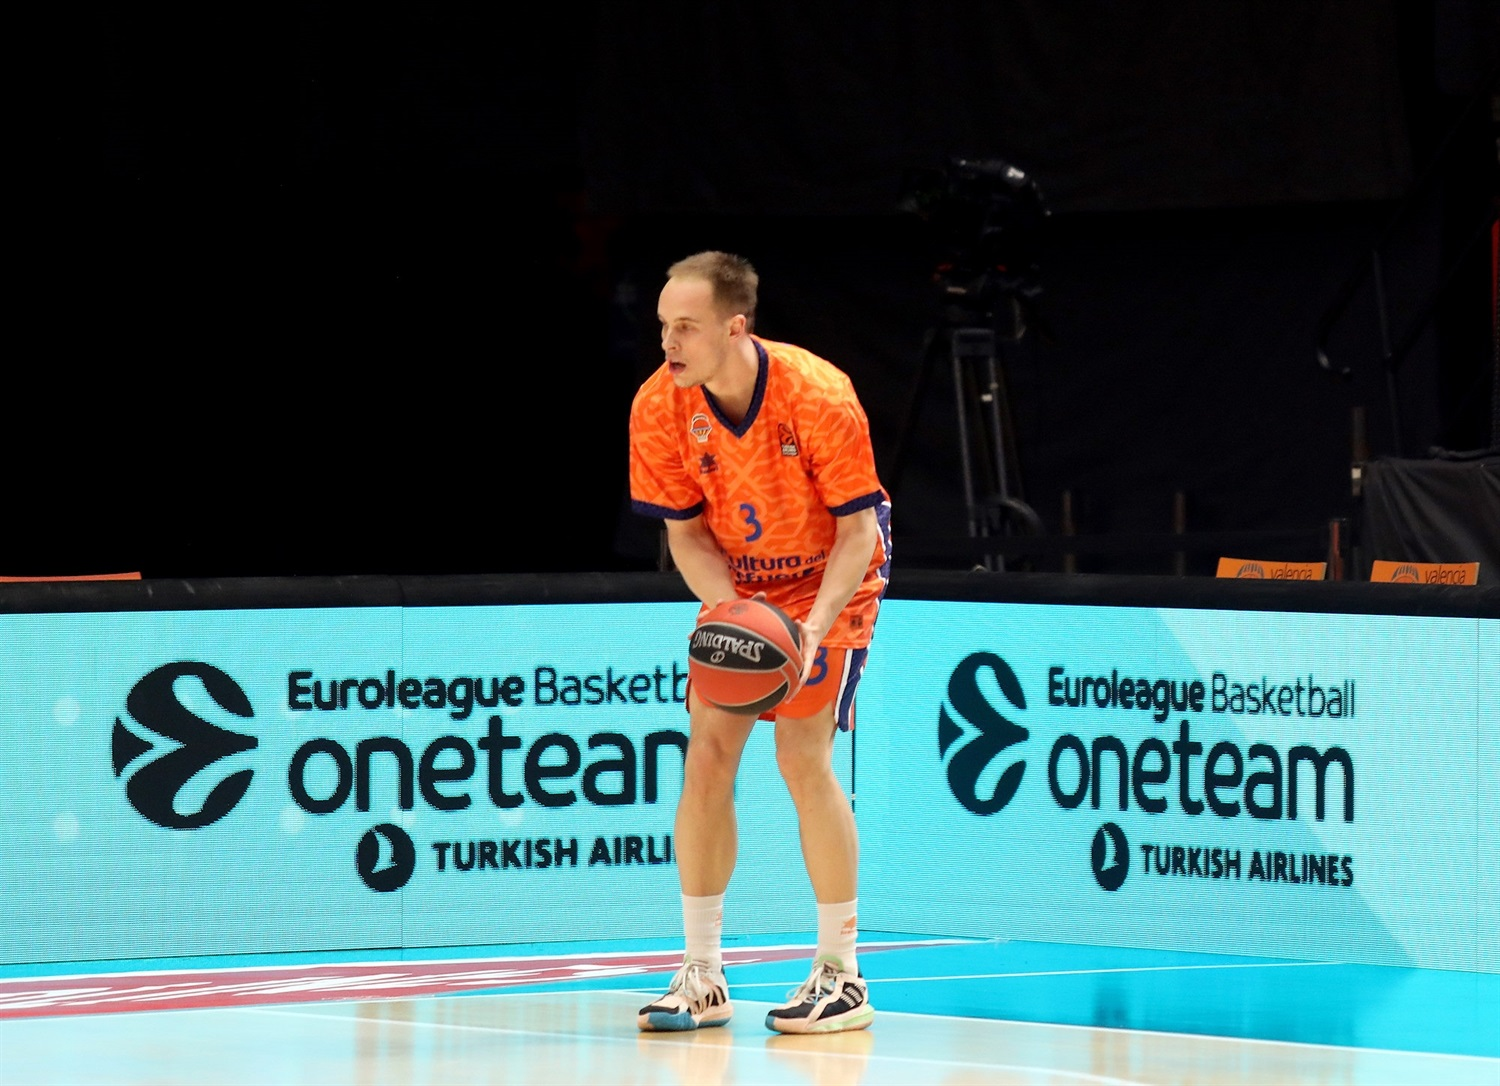 Klemen Prepelic, We Are All One Team - Valencia Basket - EB20